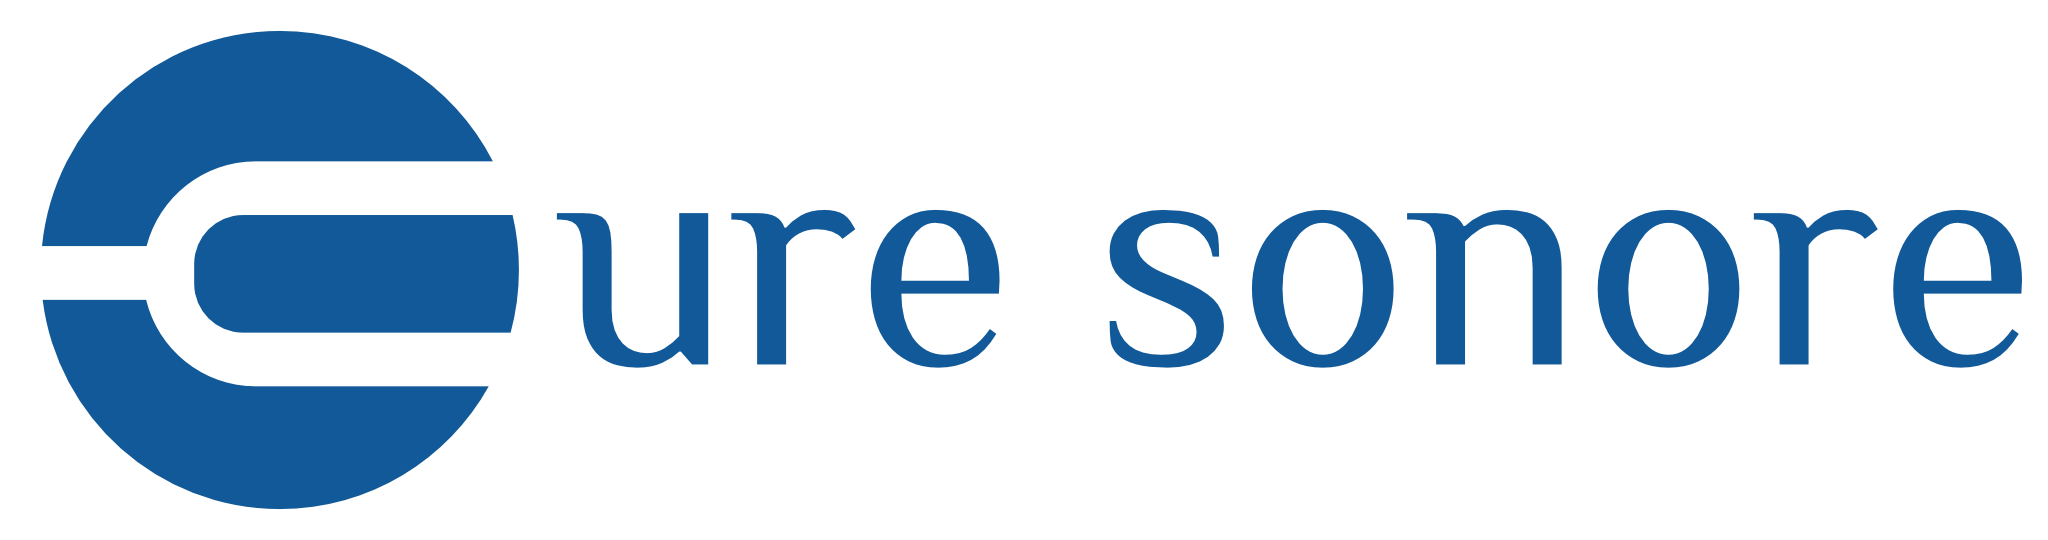 cure-sonore-logo